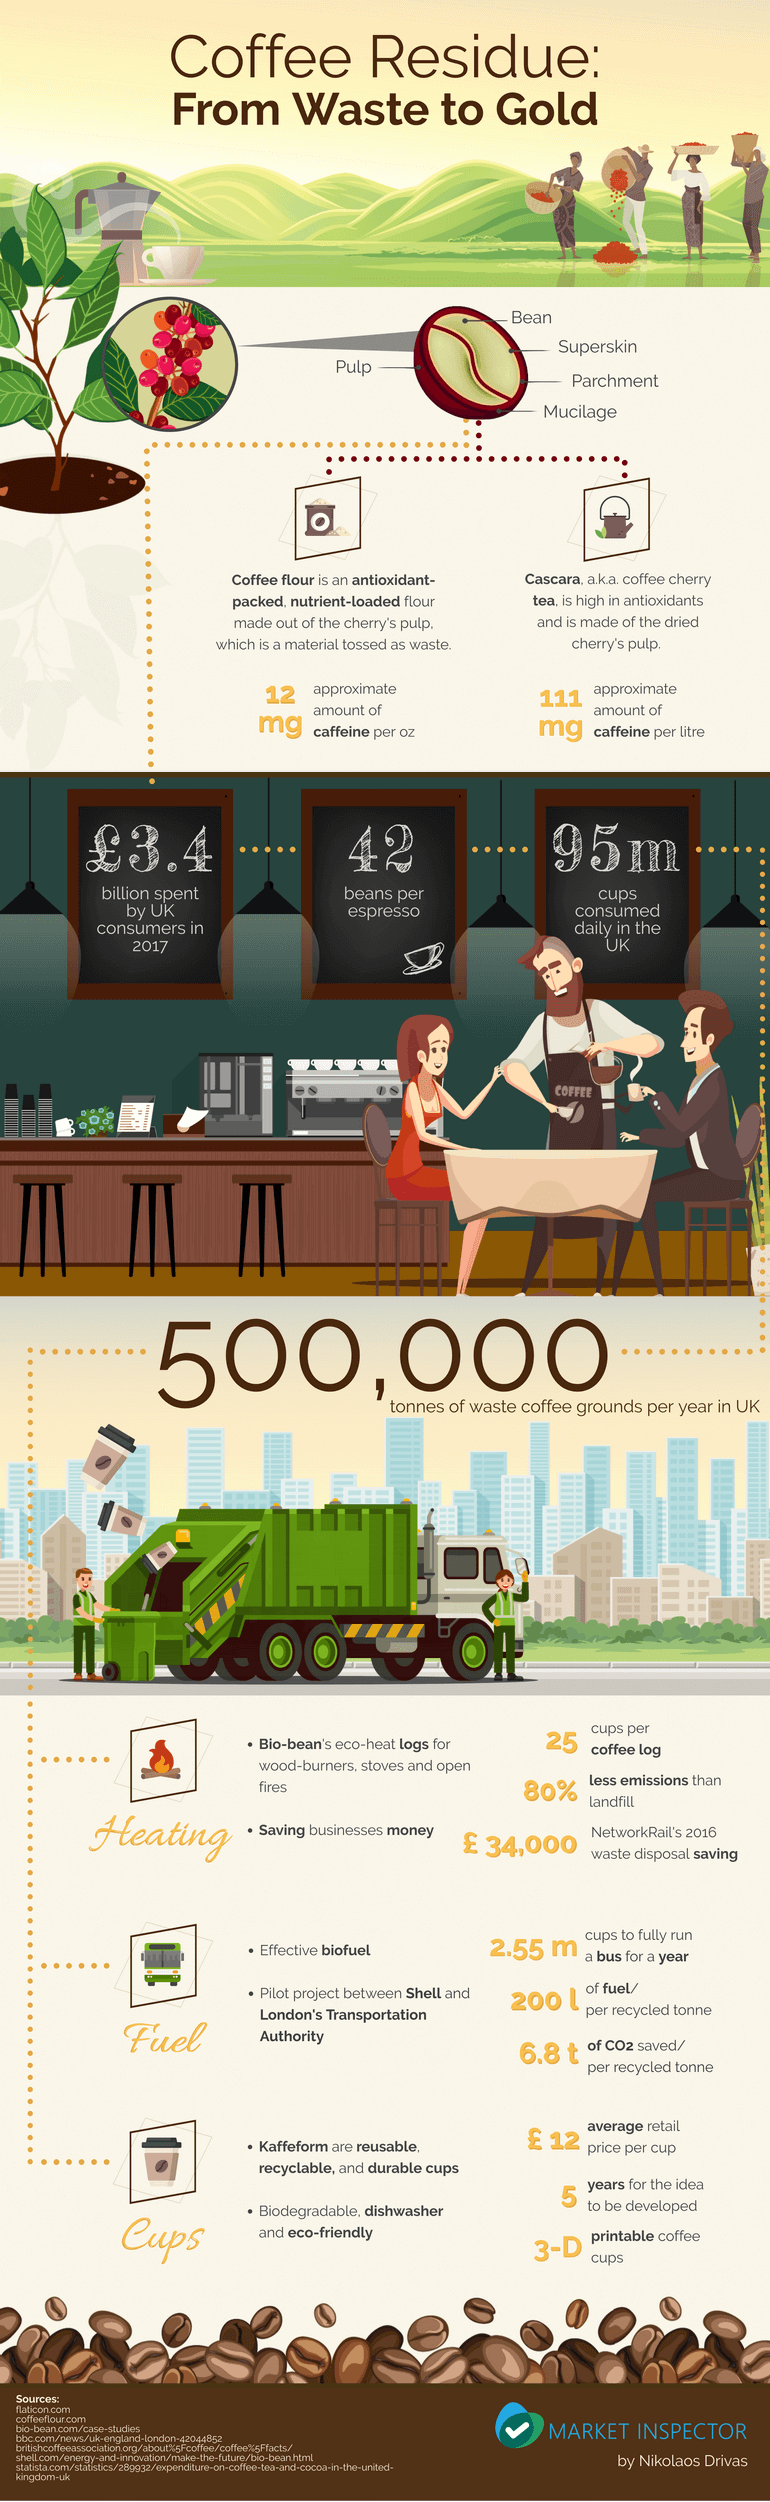 Coffee Residue: From Waste to Gold Infographic